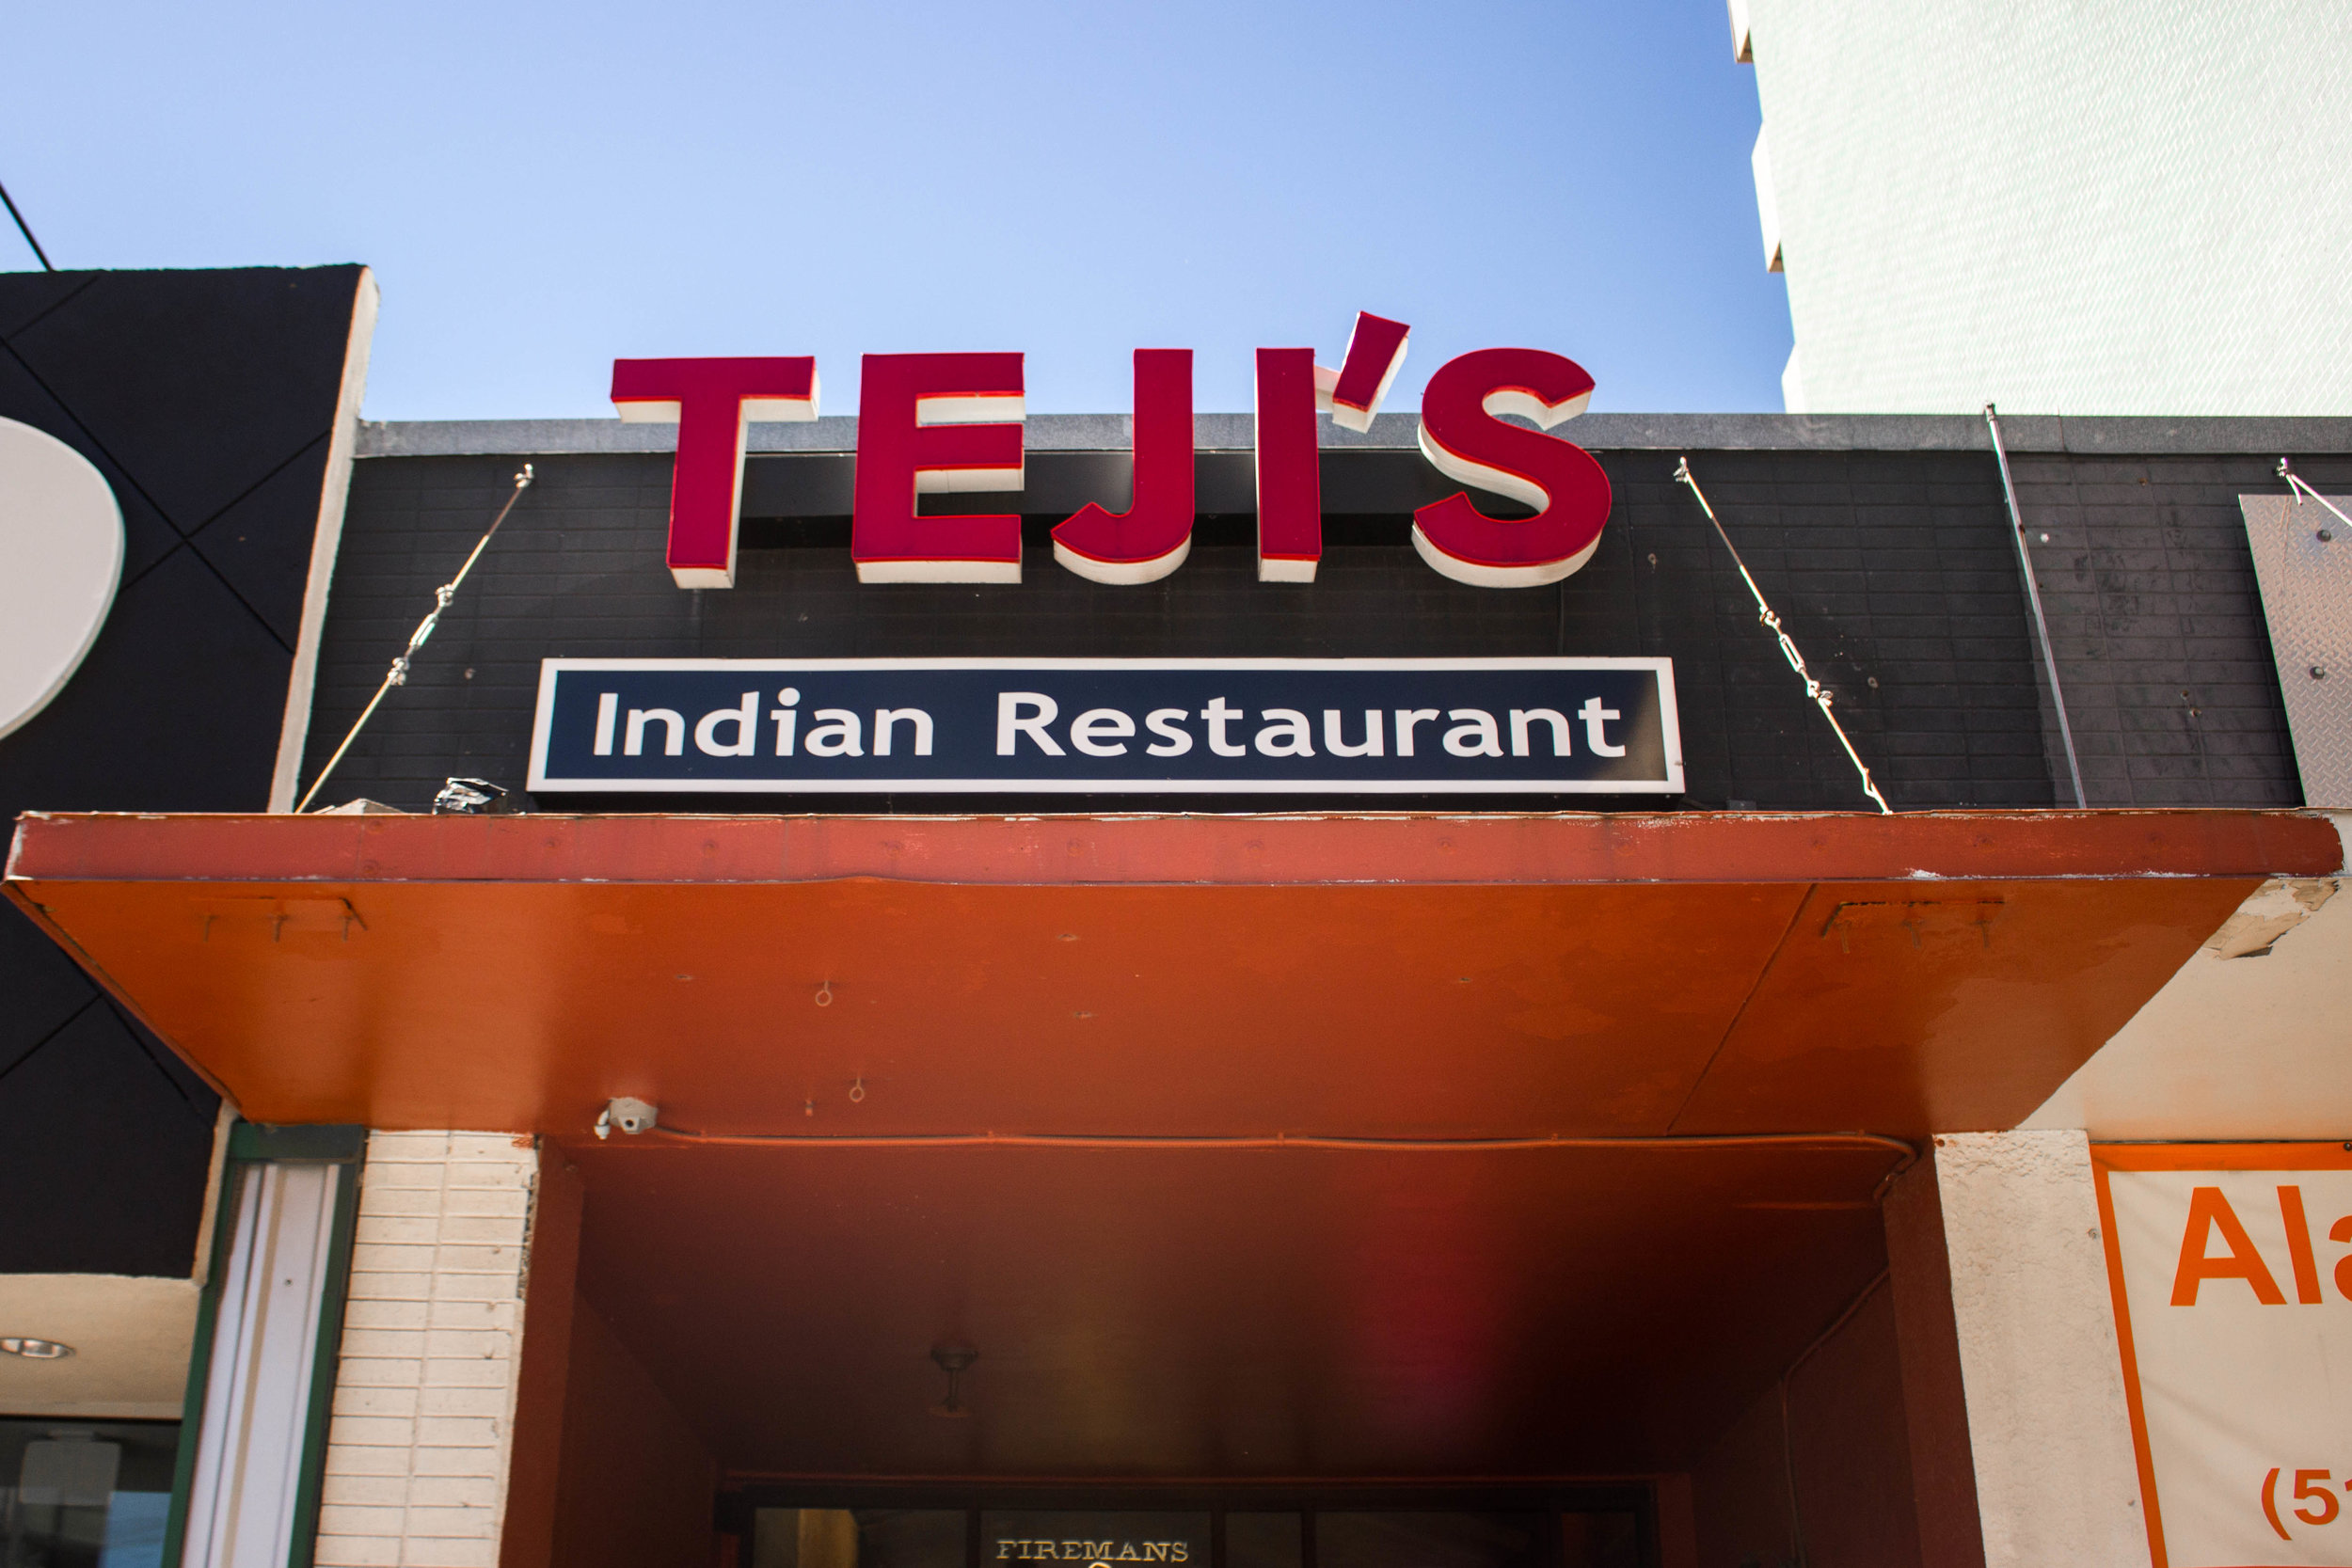 Teji's Indian Restaurant is located at the corner of 21st St. and Guadalupe St.